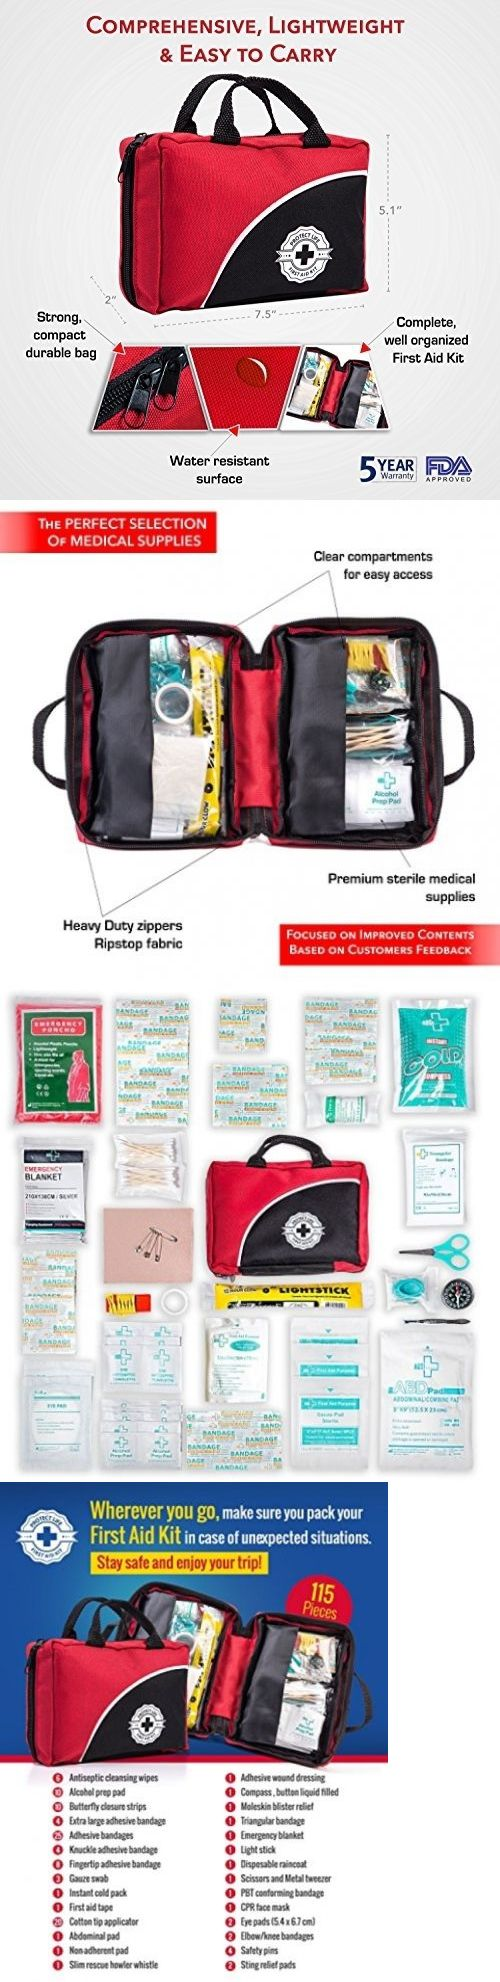 Kits and Bags: 115 Piece Trauma Bag First Aid Kit Emergency Supplies Stocked Emt Ems Paramedic -> BUY IT NOW ONLY: $31.27 on eBay!